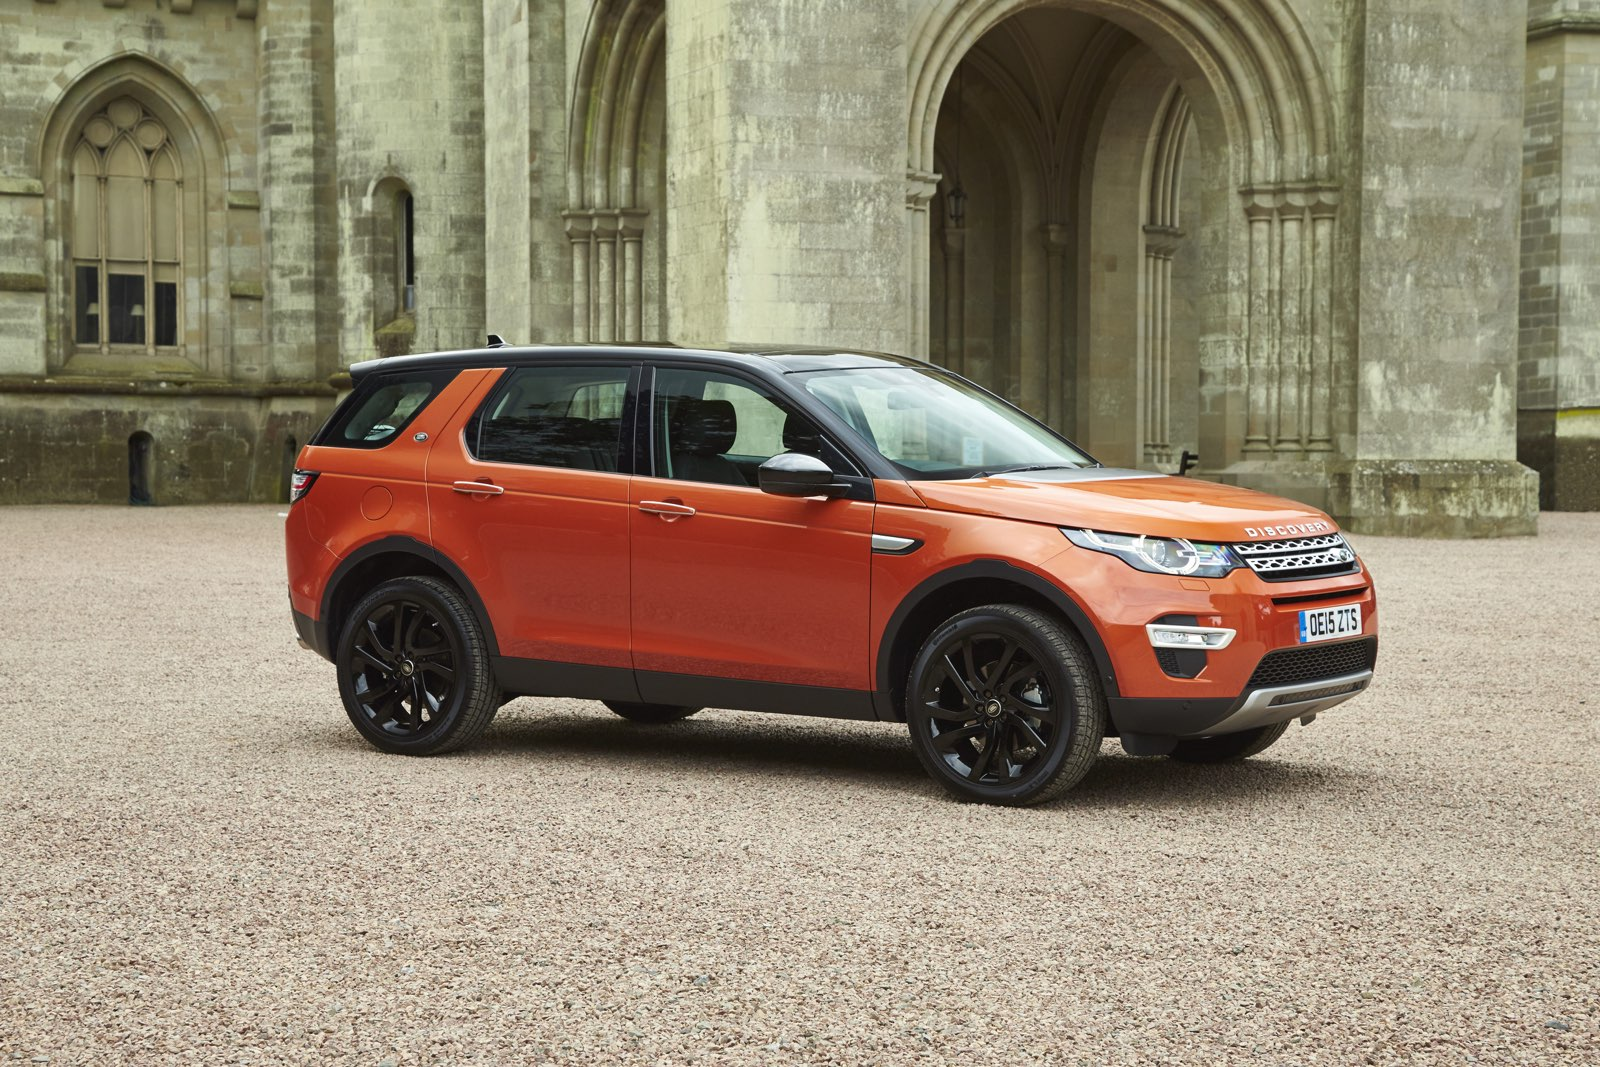 http://www.musclecarszone.com/wp-content/uploads/2015/12/2016-Land-Rover-Discovery-Sport-3.jpg